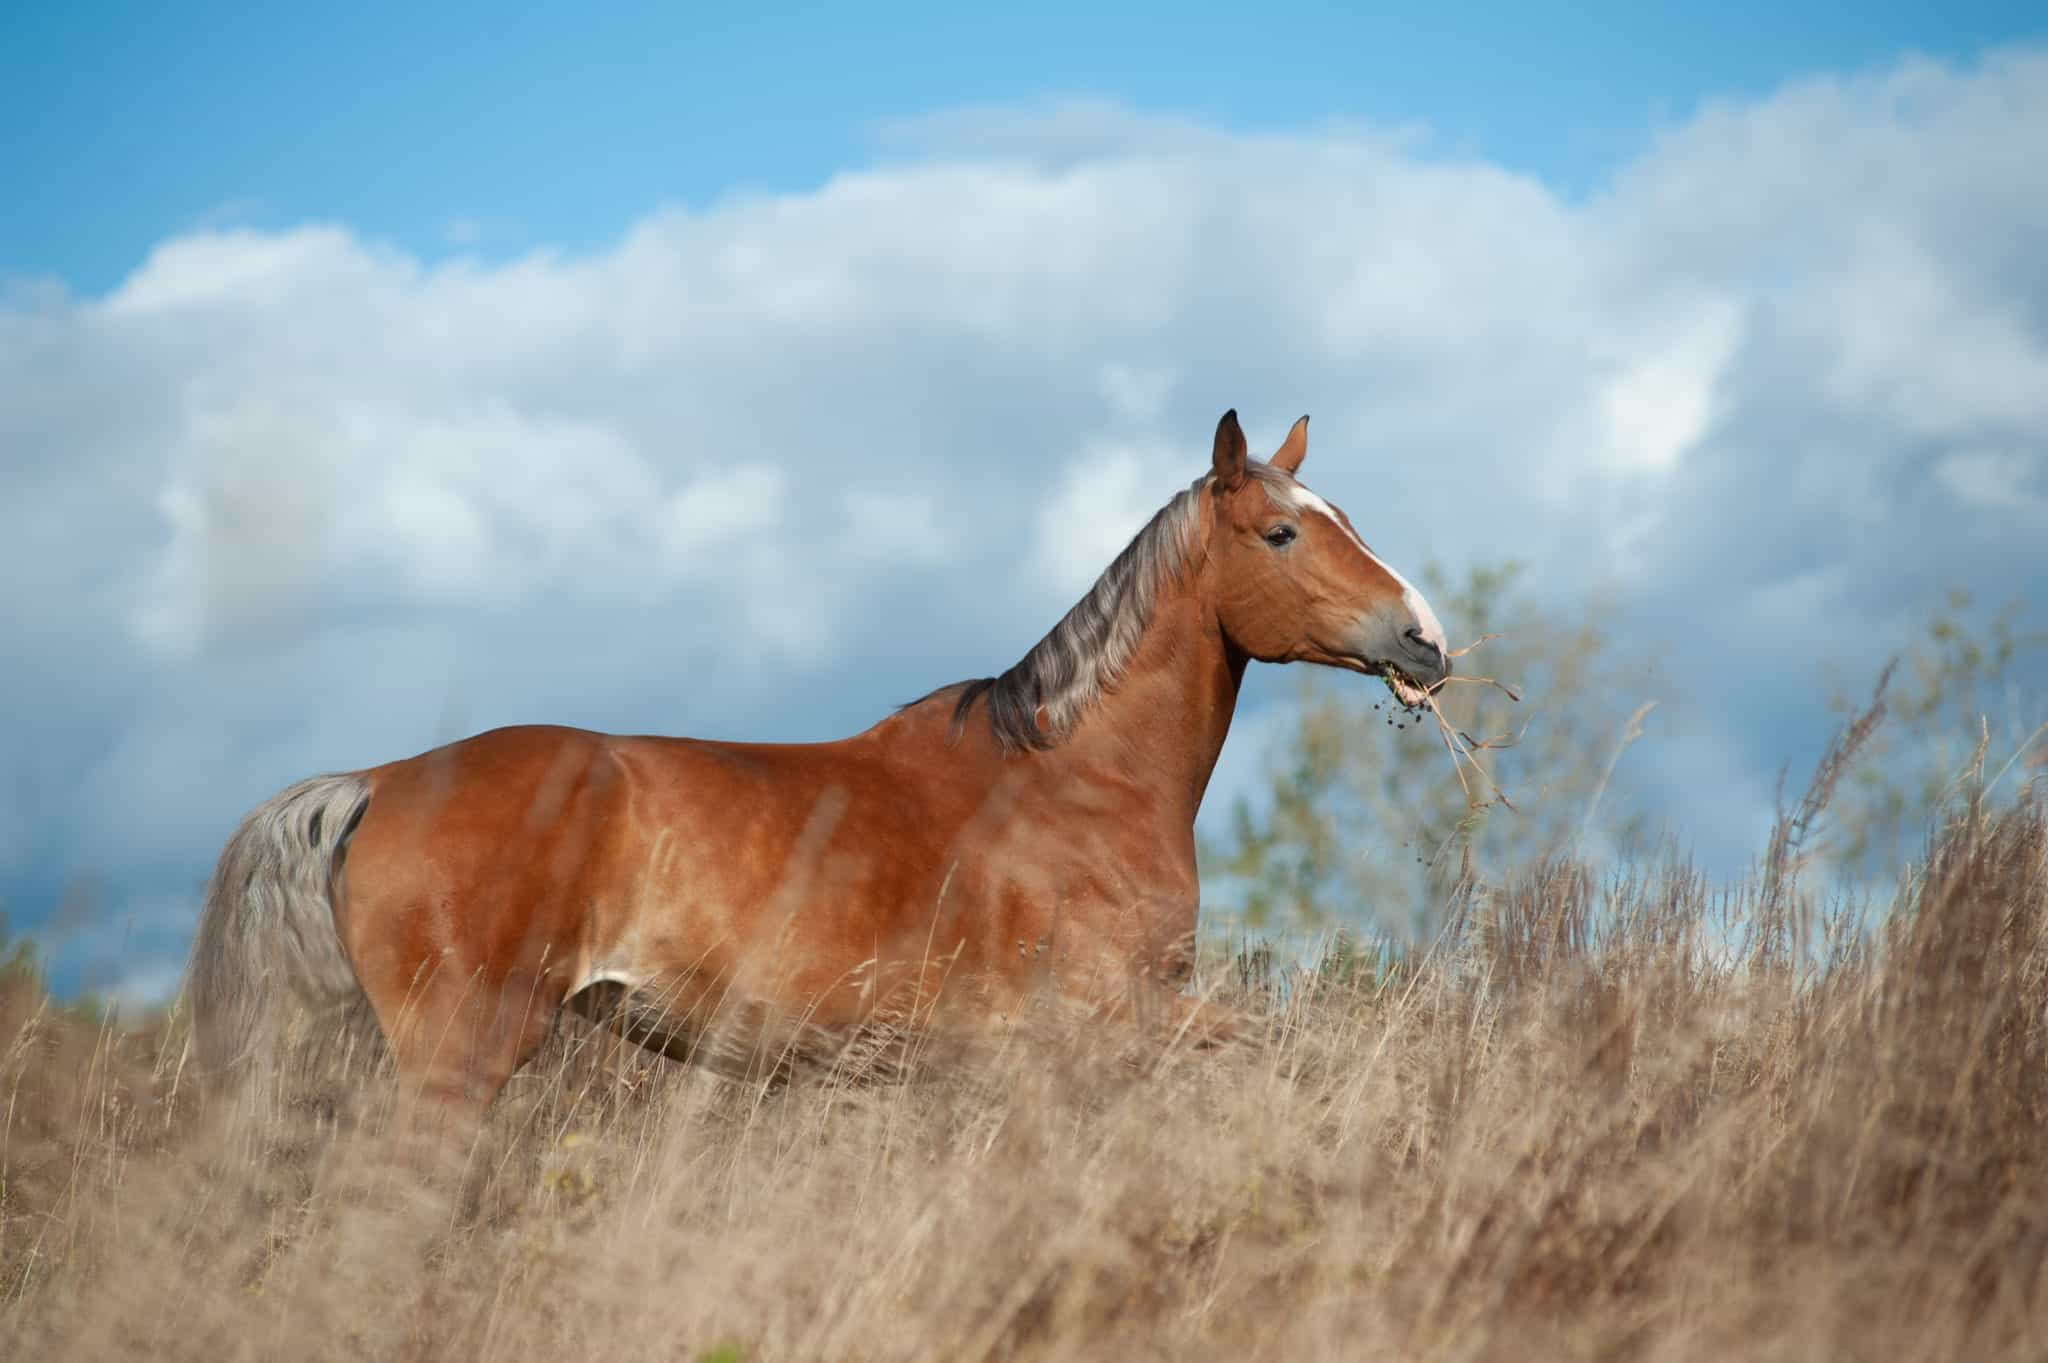 Palomino horse in the field grazing on freedom